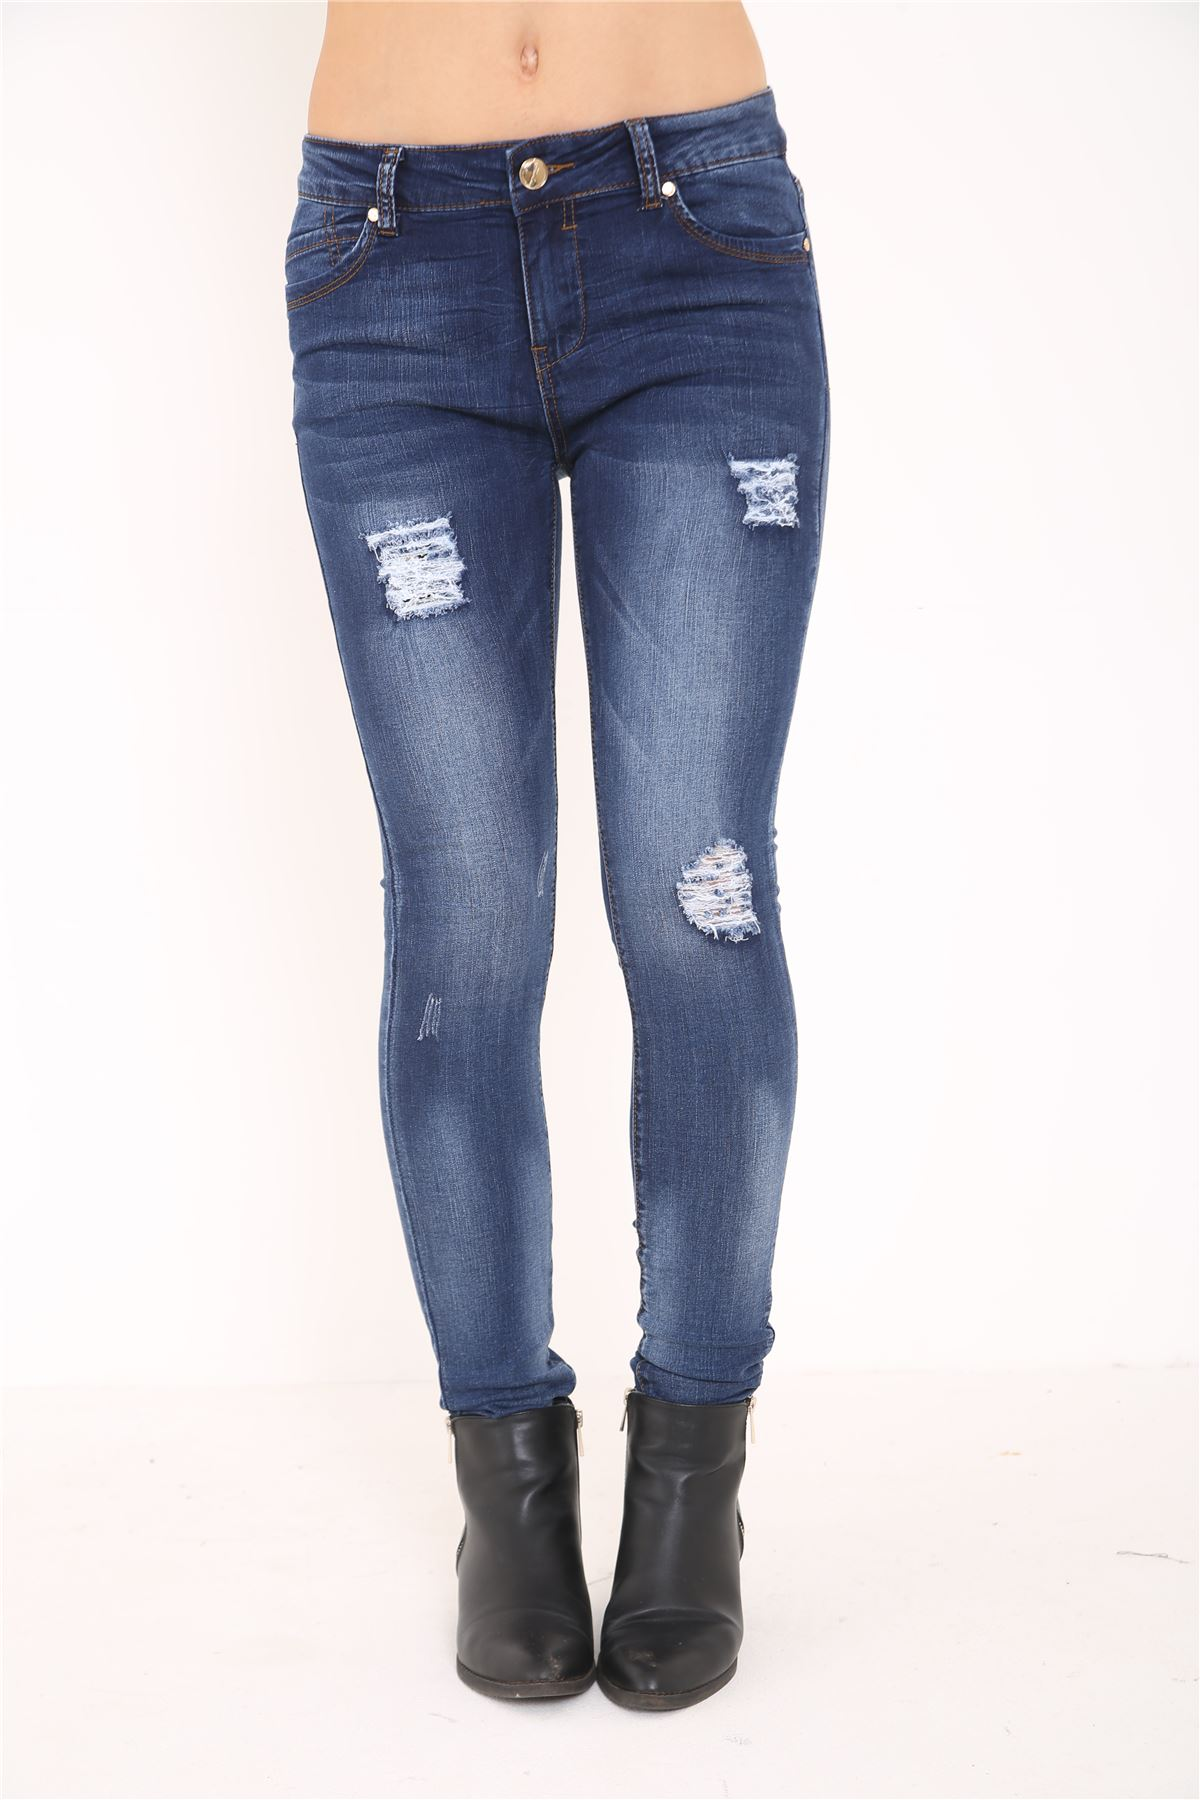 Ladies womens jeans high waisted embroidered denim skinny